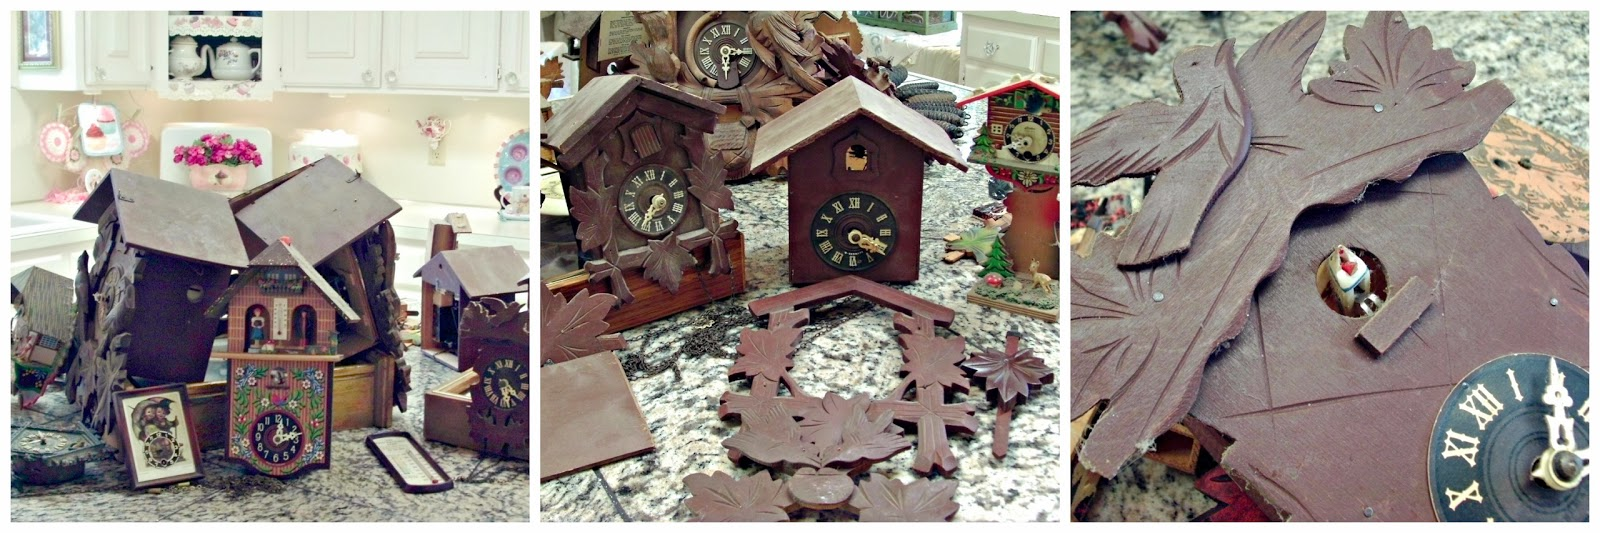 Here Are A Few Photos From The Post I Did Last Summer When We Bought All  These Clocks...there Was About 15 Of Them. Most Will Be Left In The  Original ...